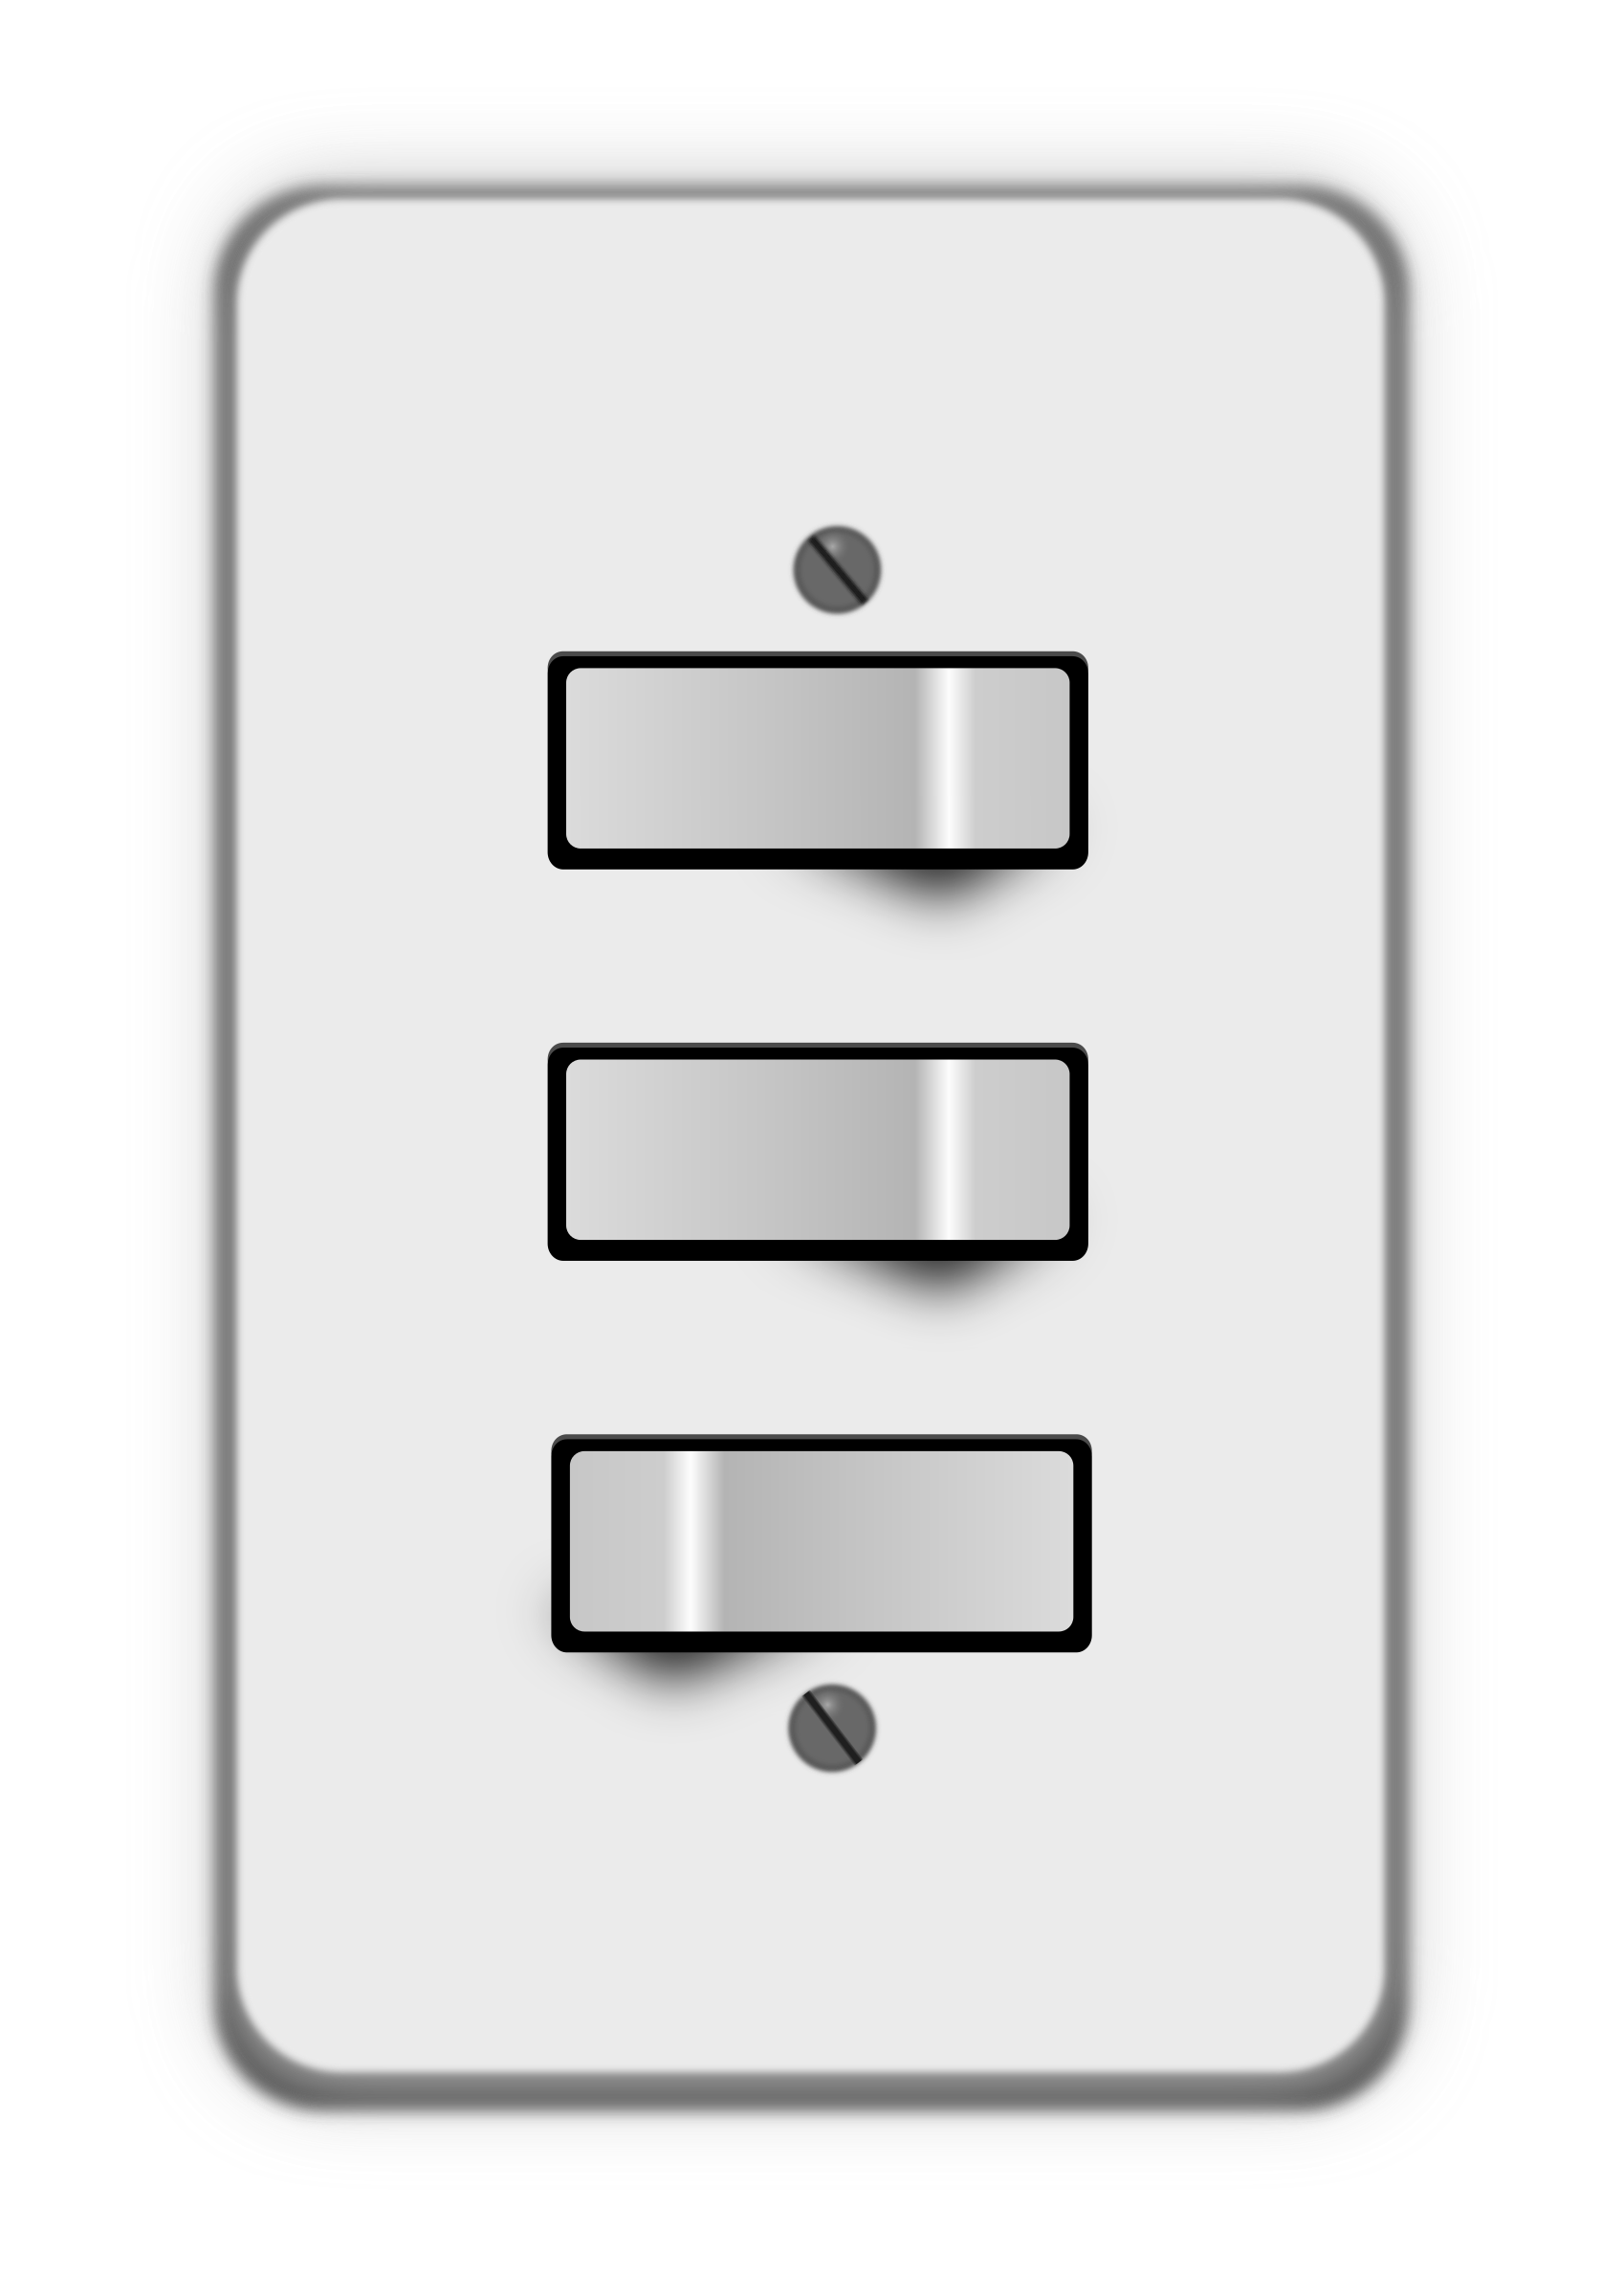 Button clipart light switch. Switches two off big